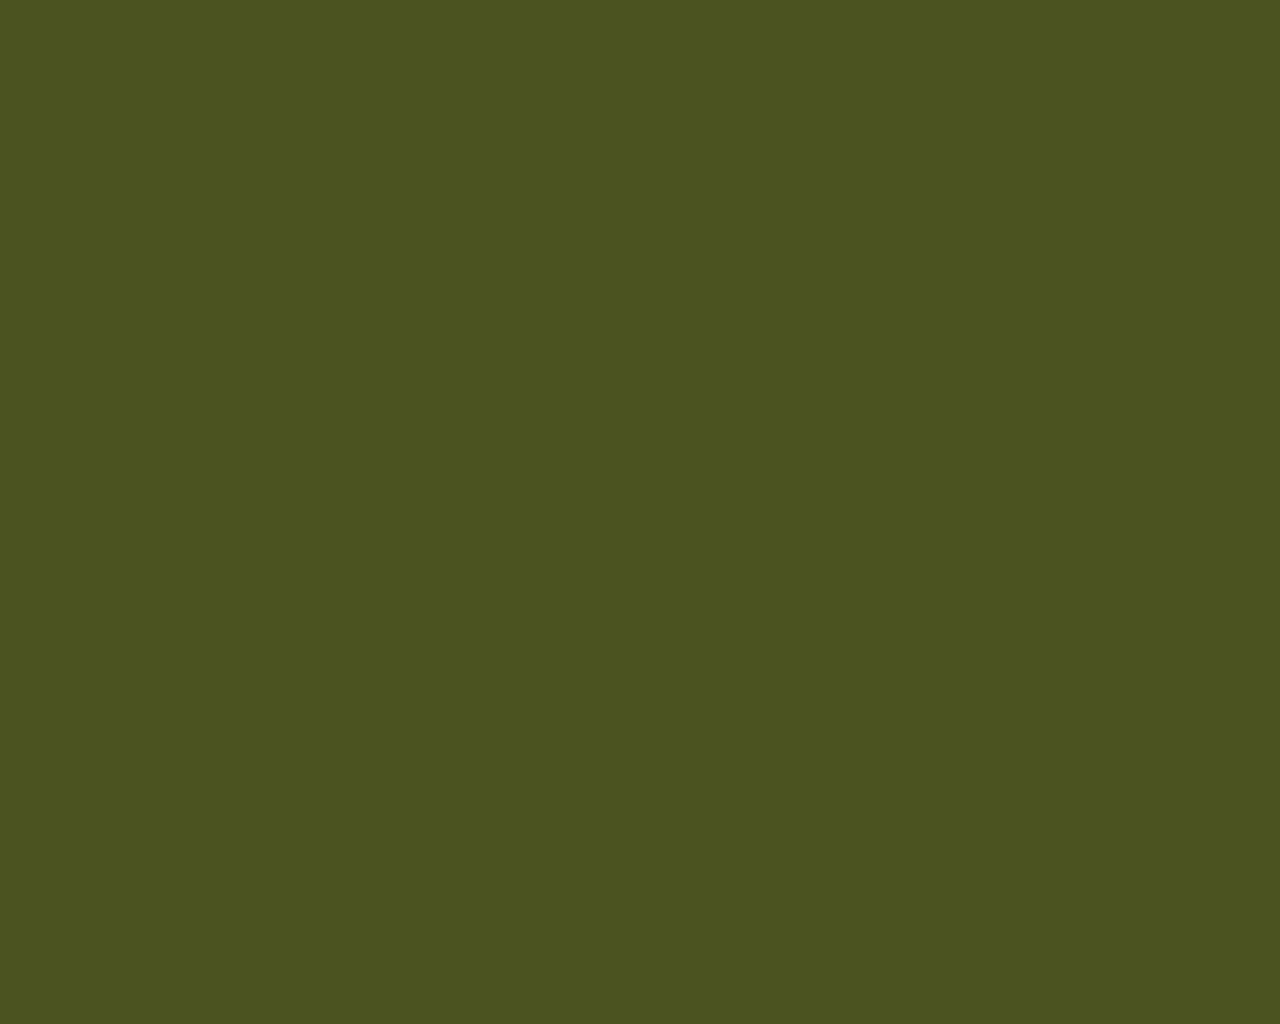 X Army Green Solid Color Background